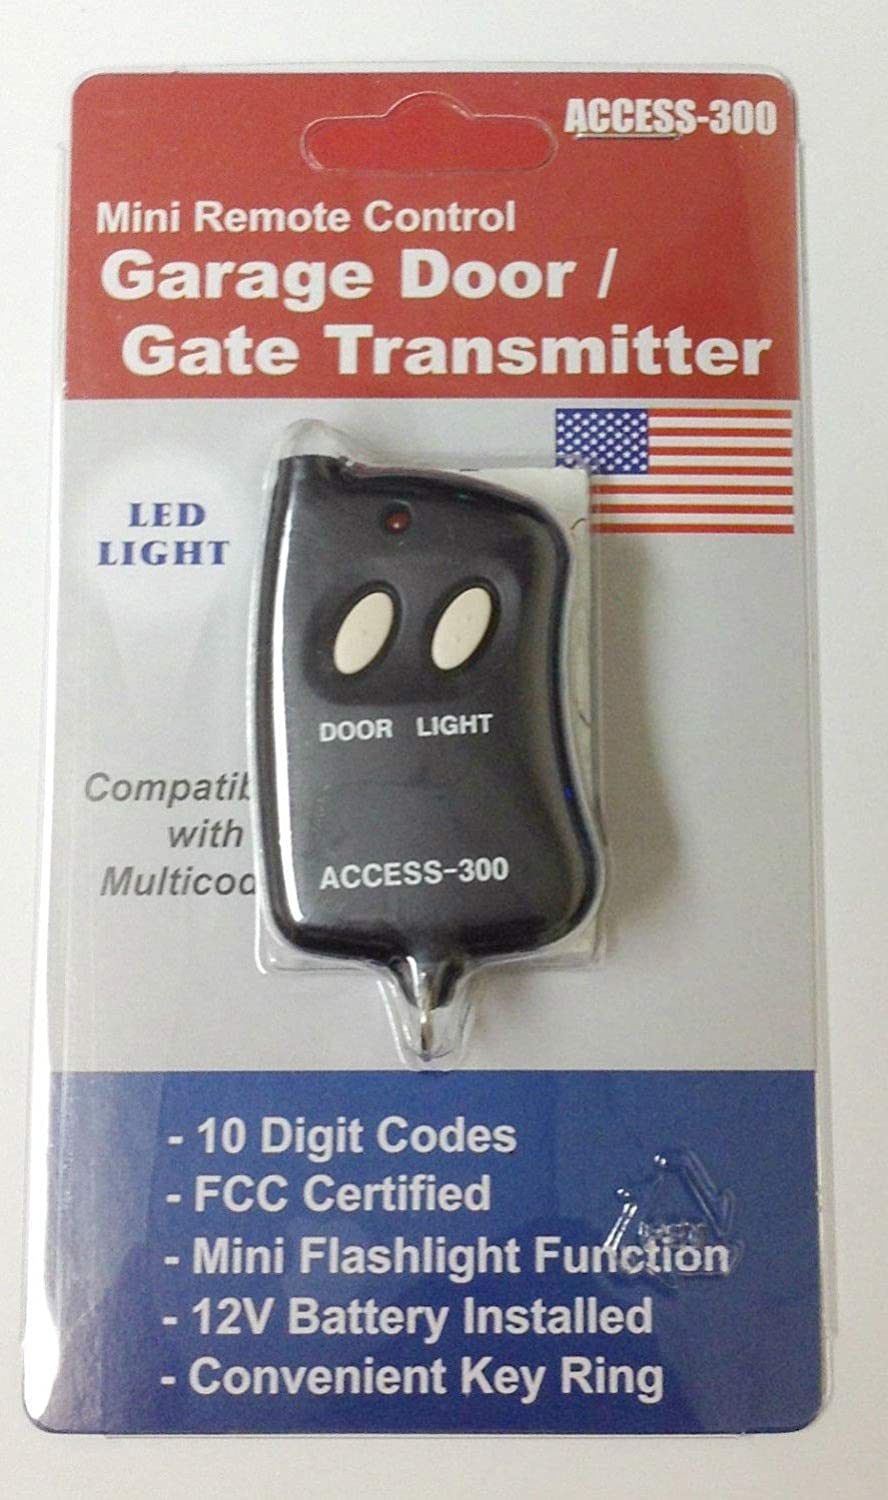 10 Digit Gate Remote Control Garage Door Gate Transmitter opener